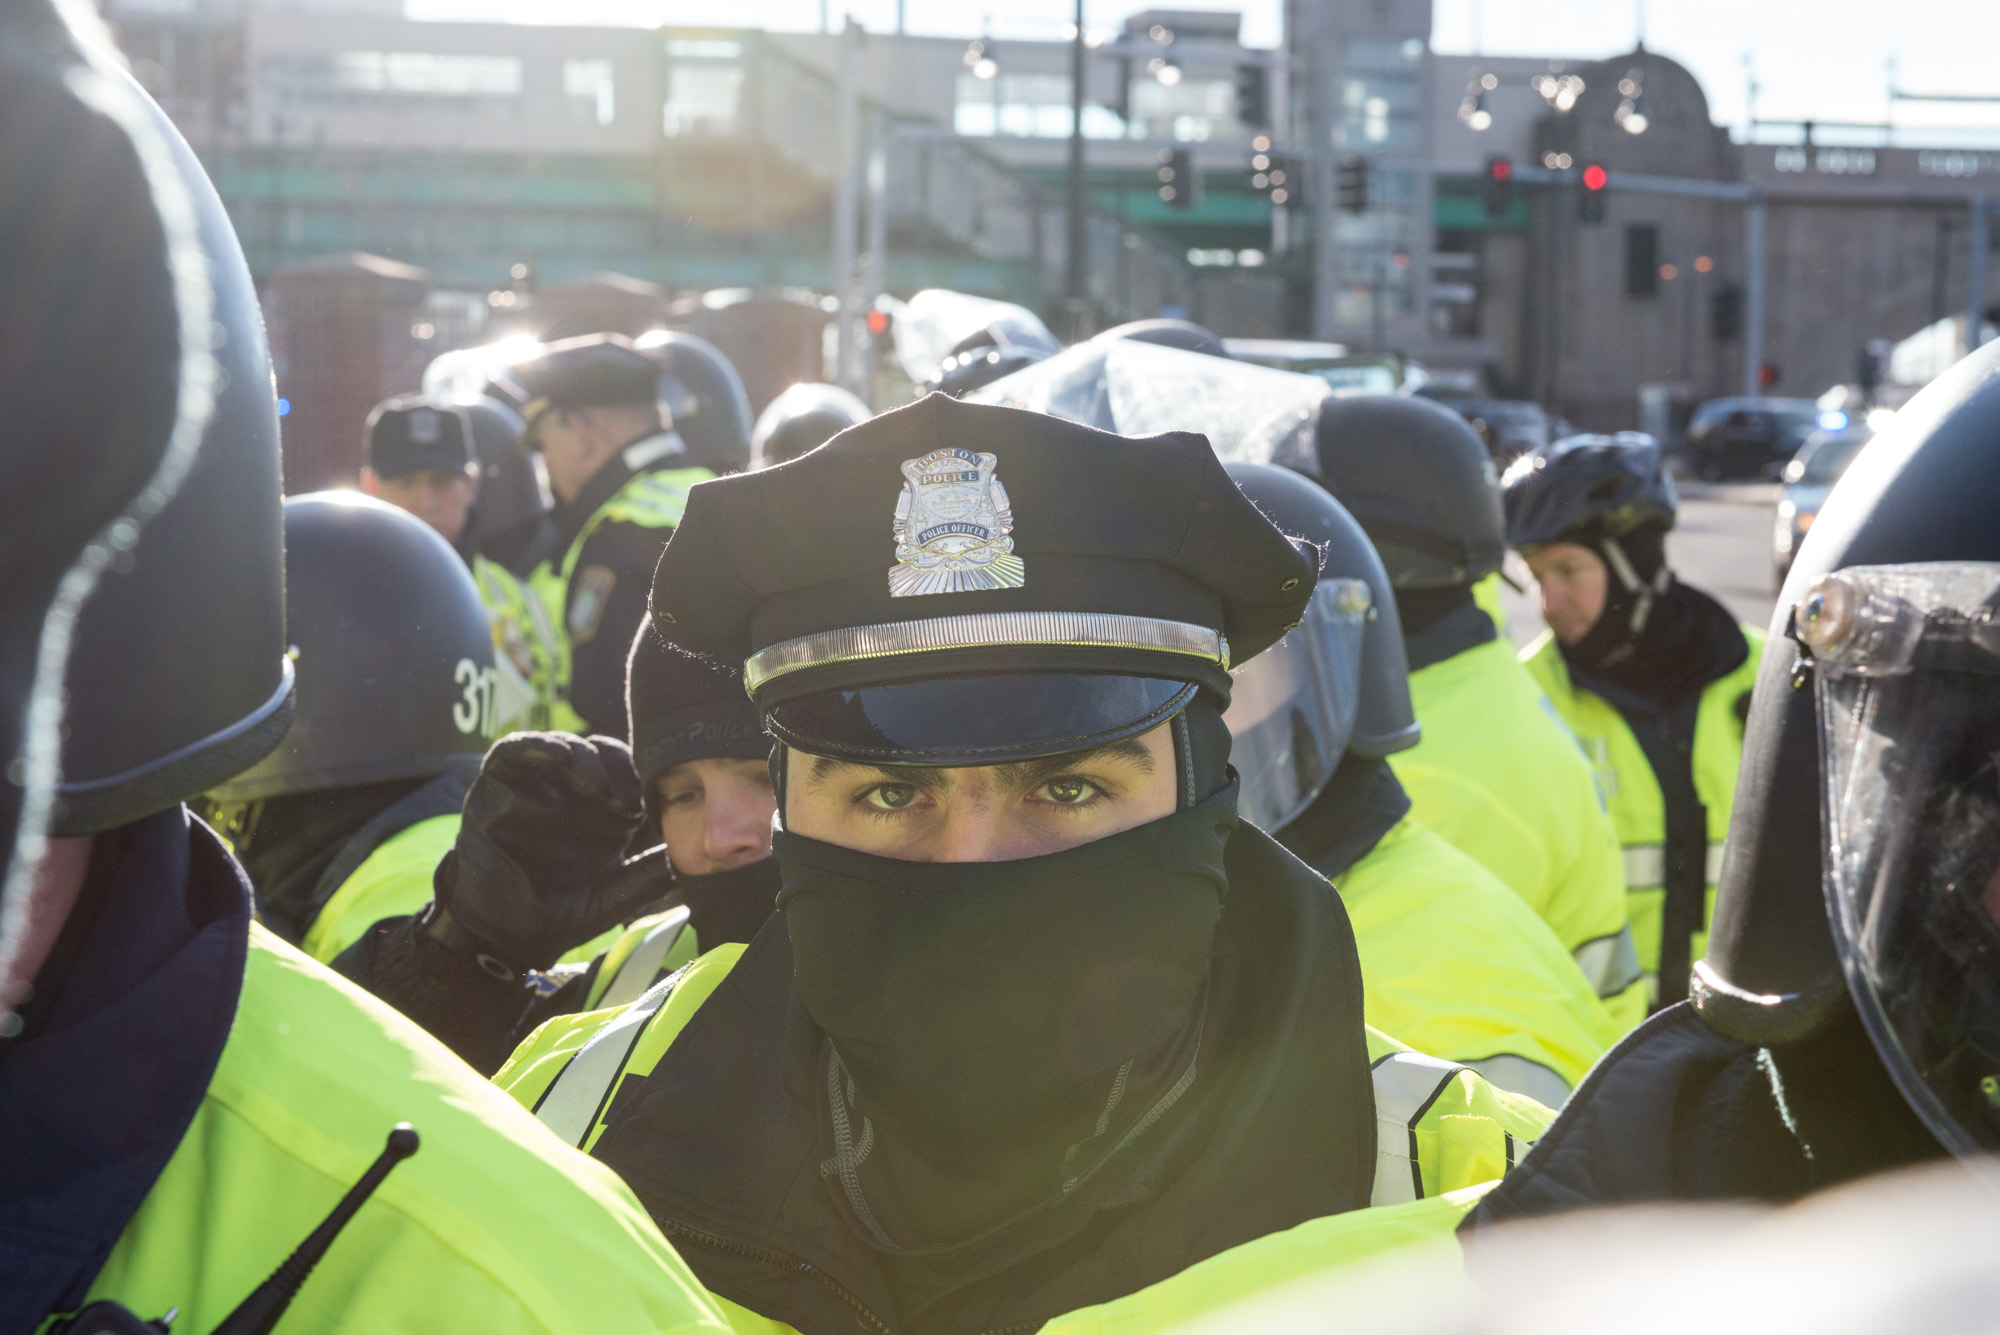 Behind the line of helmeted officers were dozens more in the street